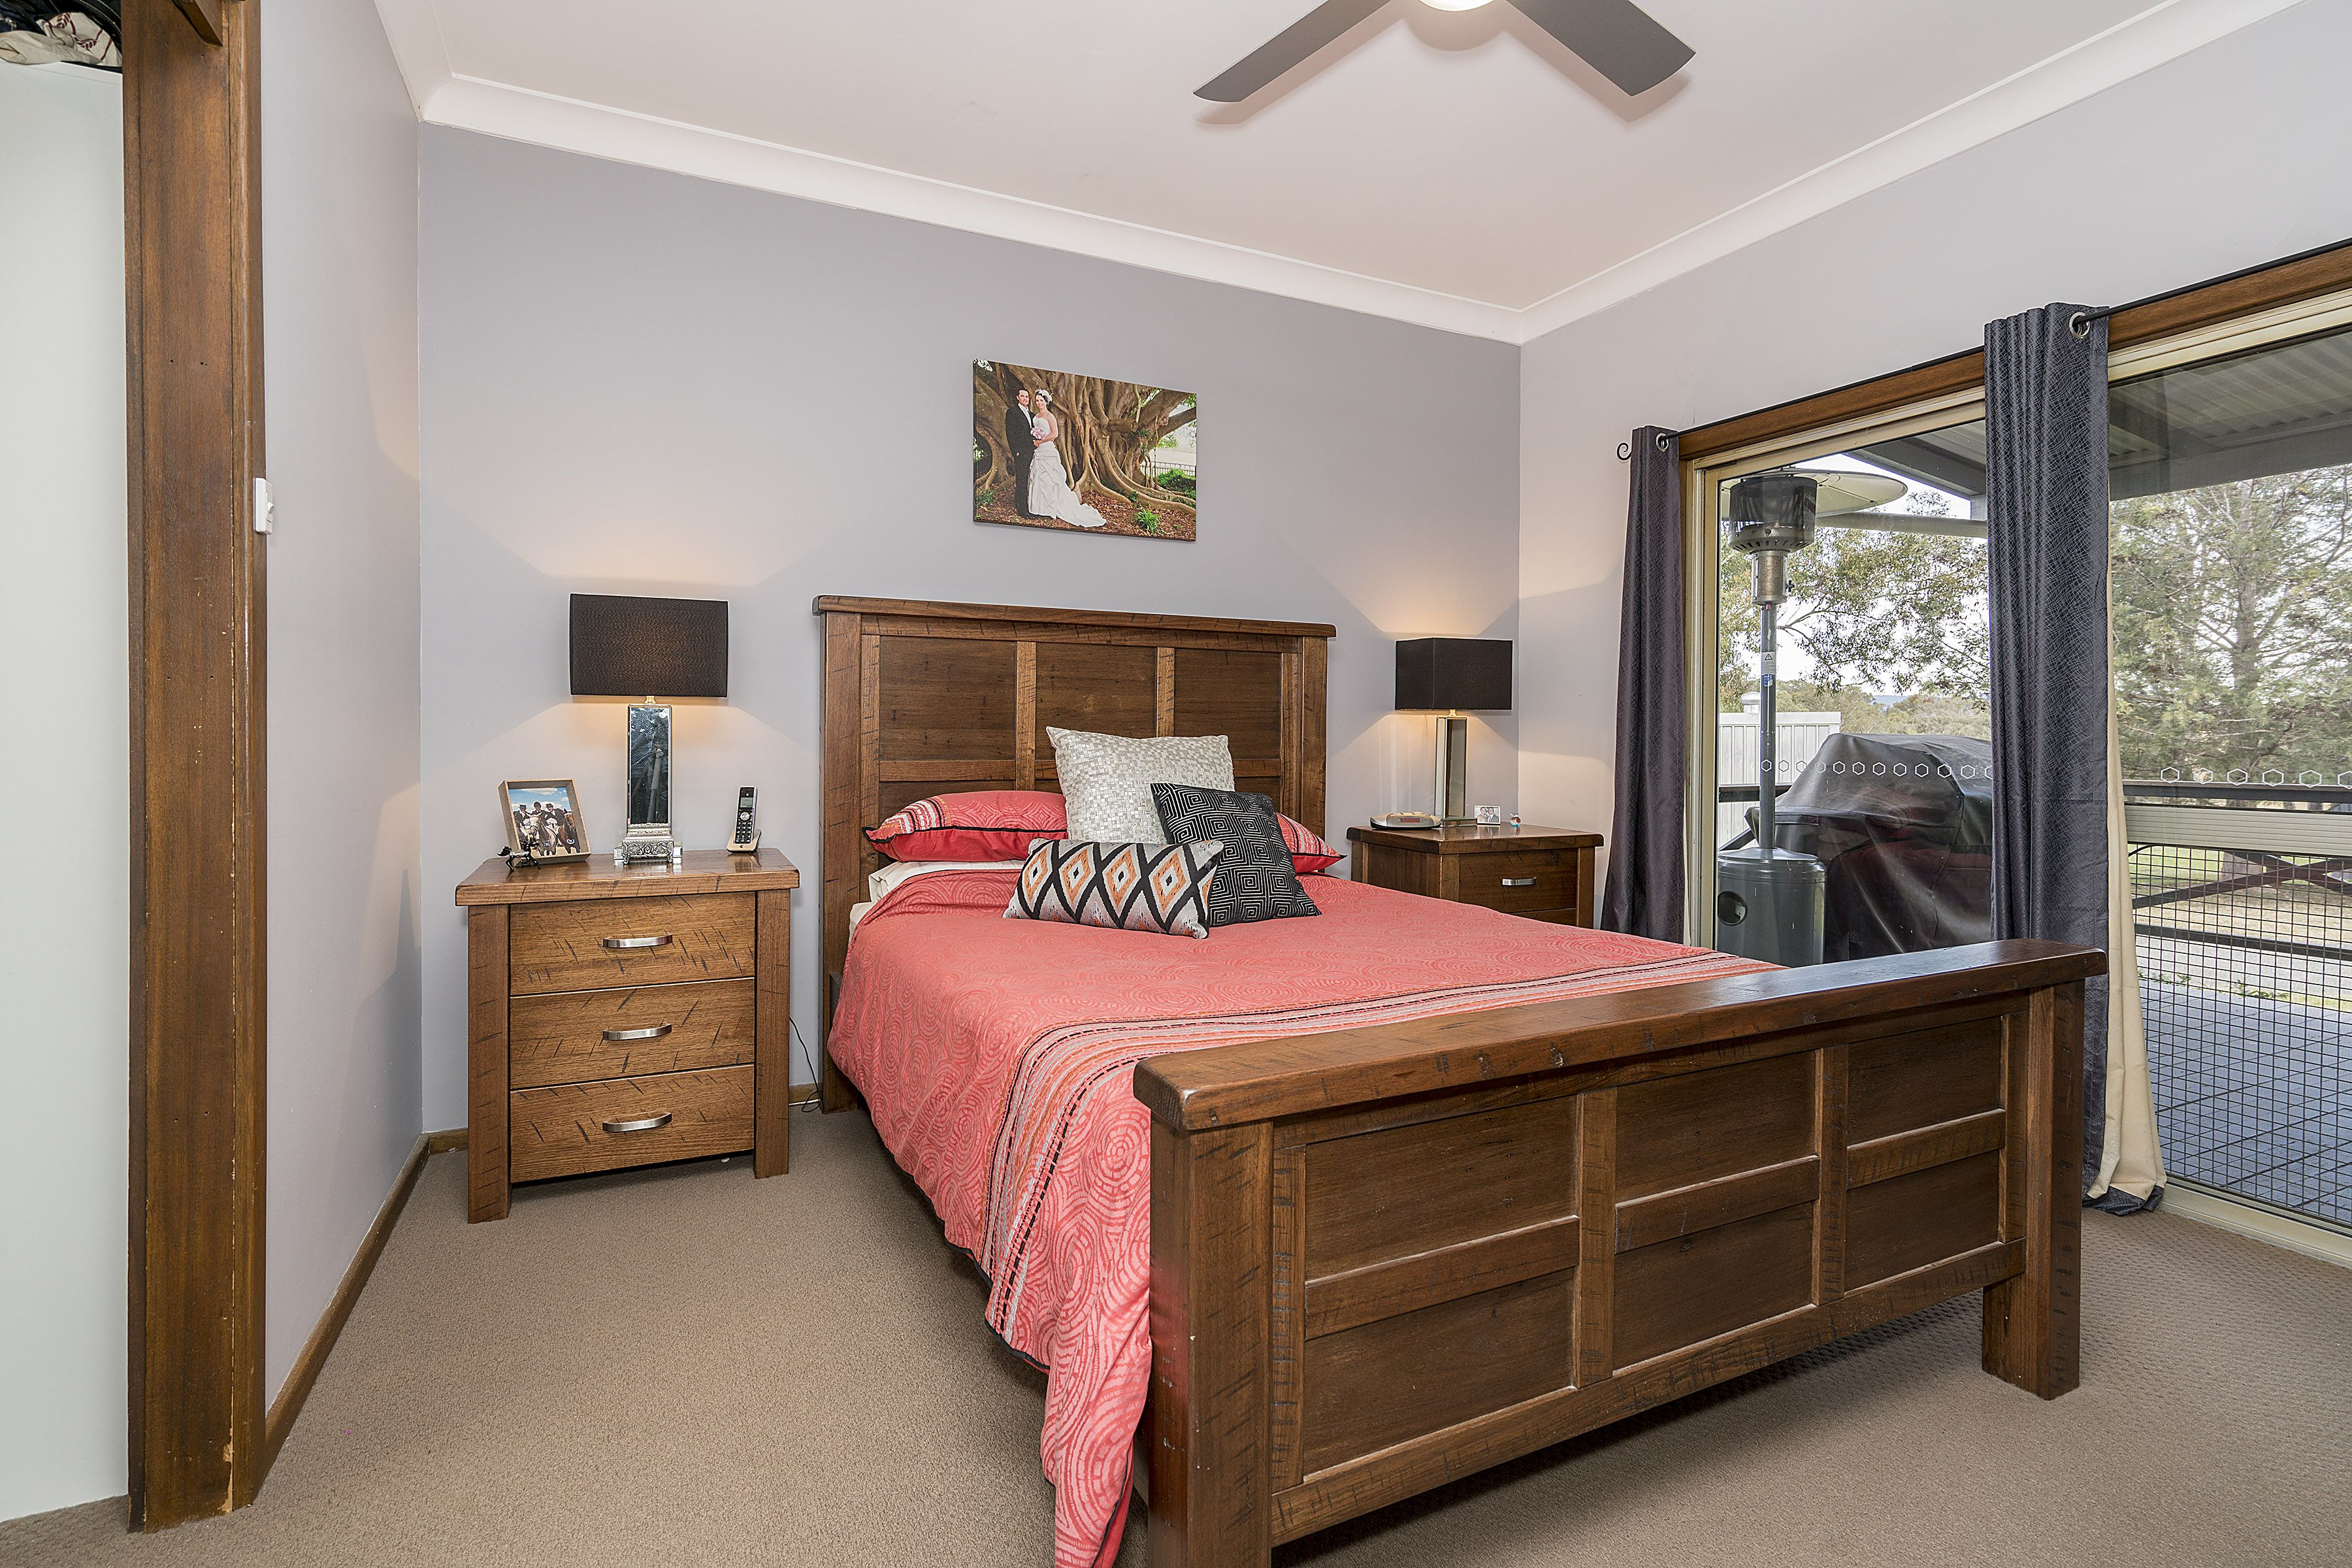 3193 New England Highway, Belford